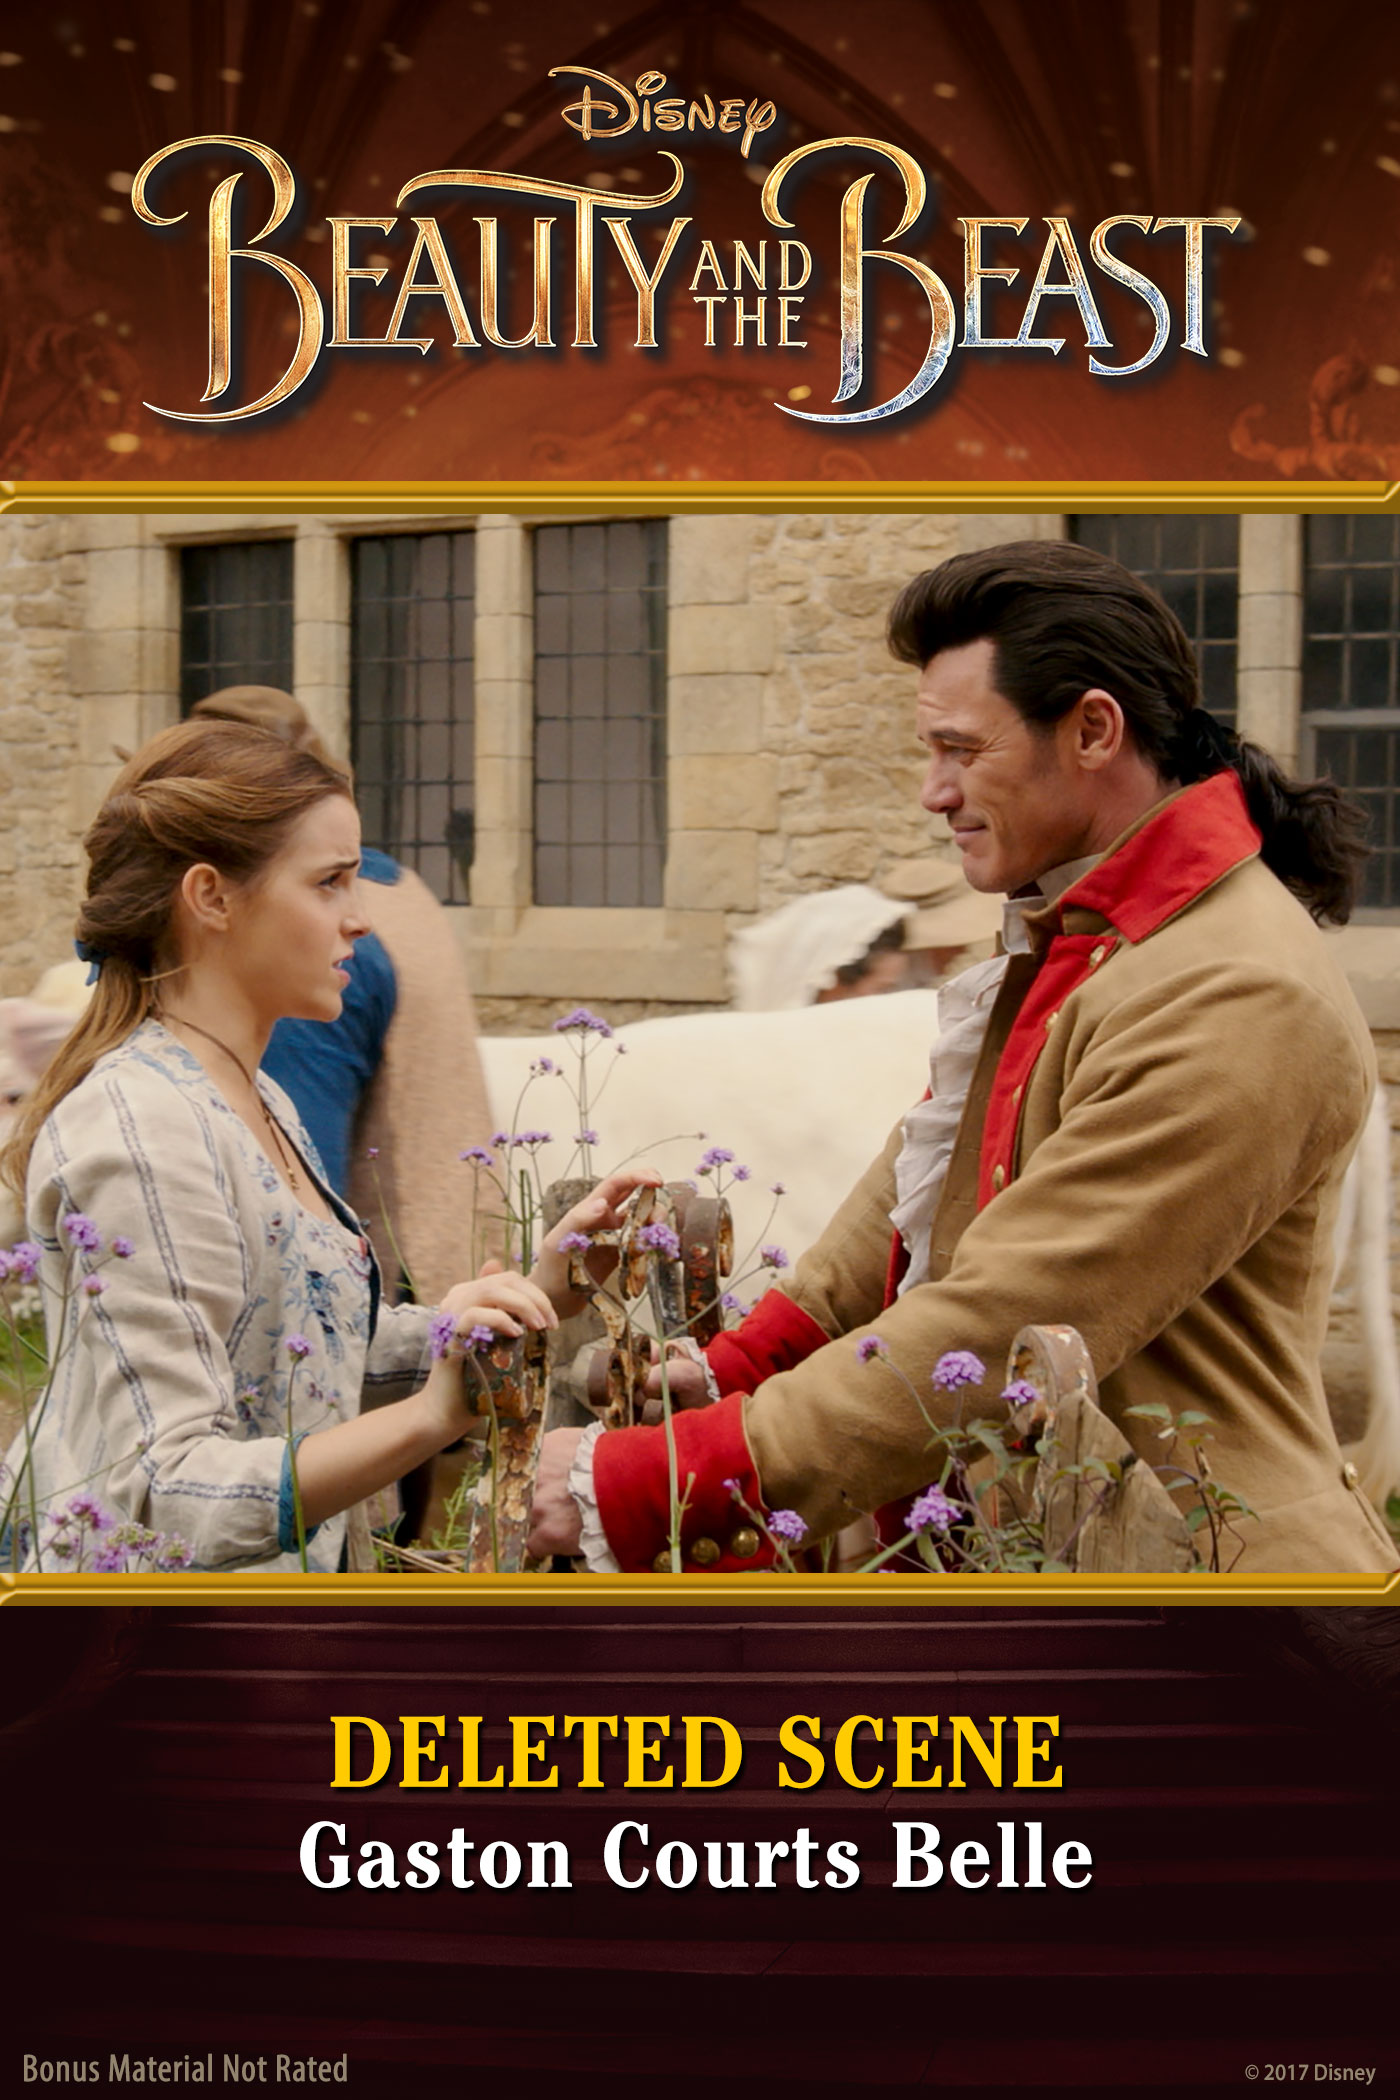 Deleted Scene: Gaston Courts Belle